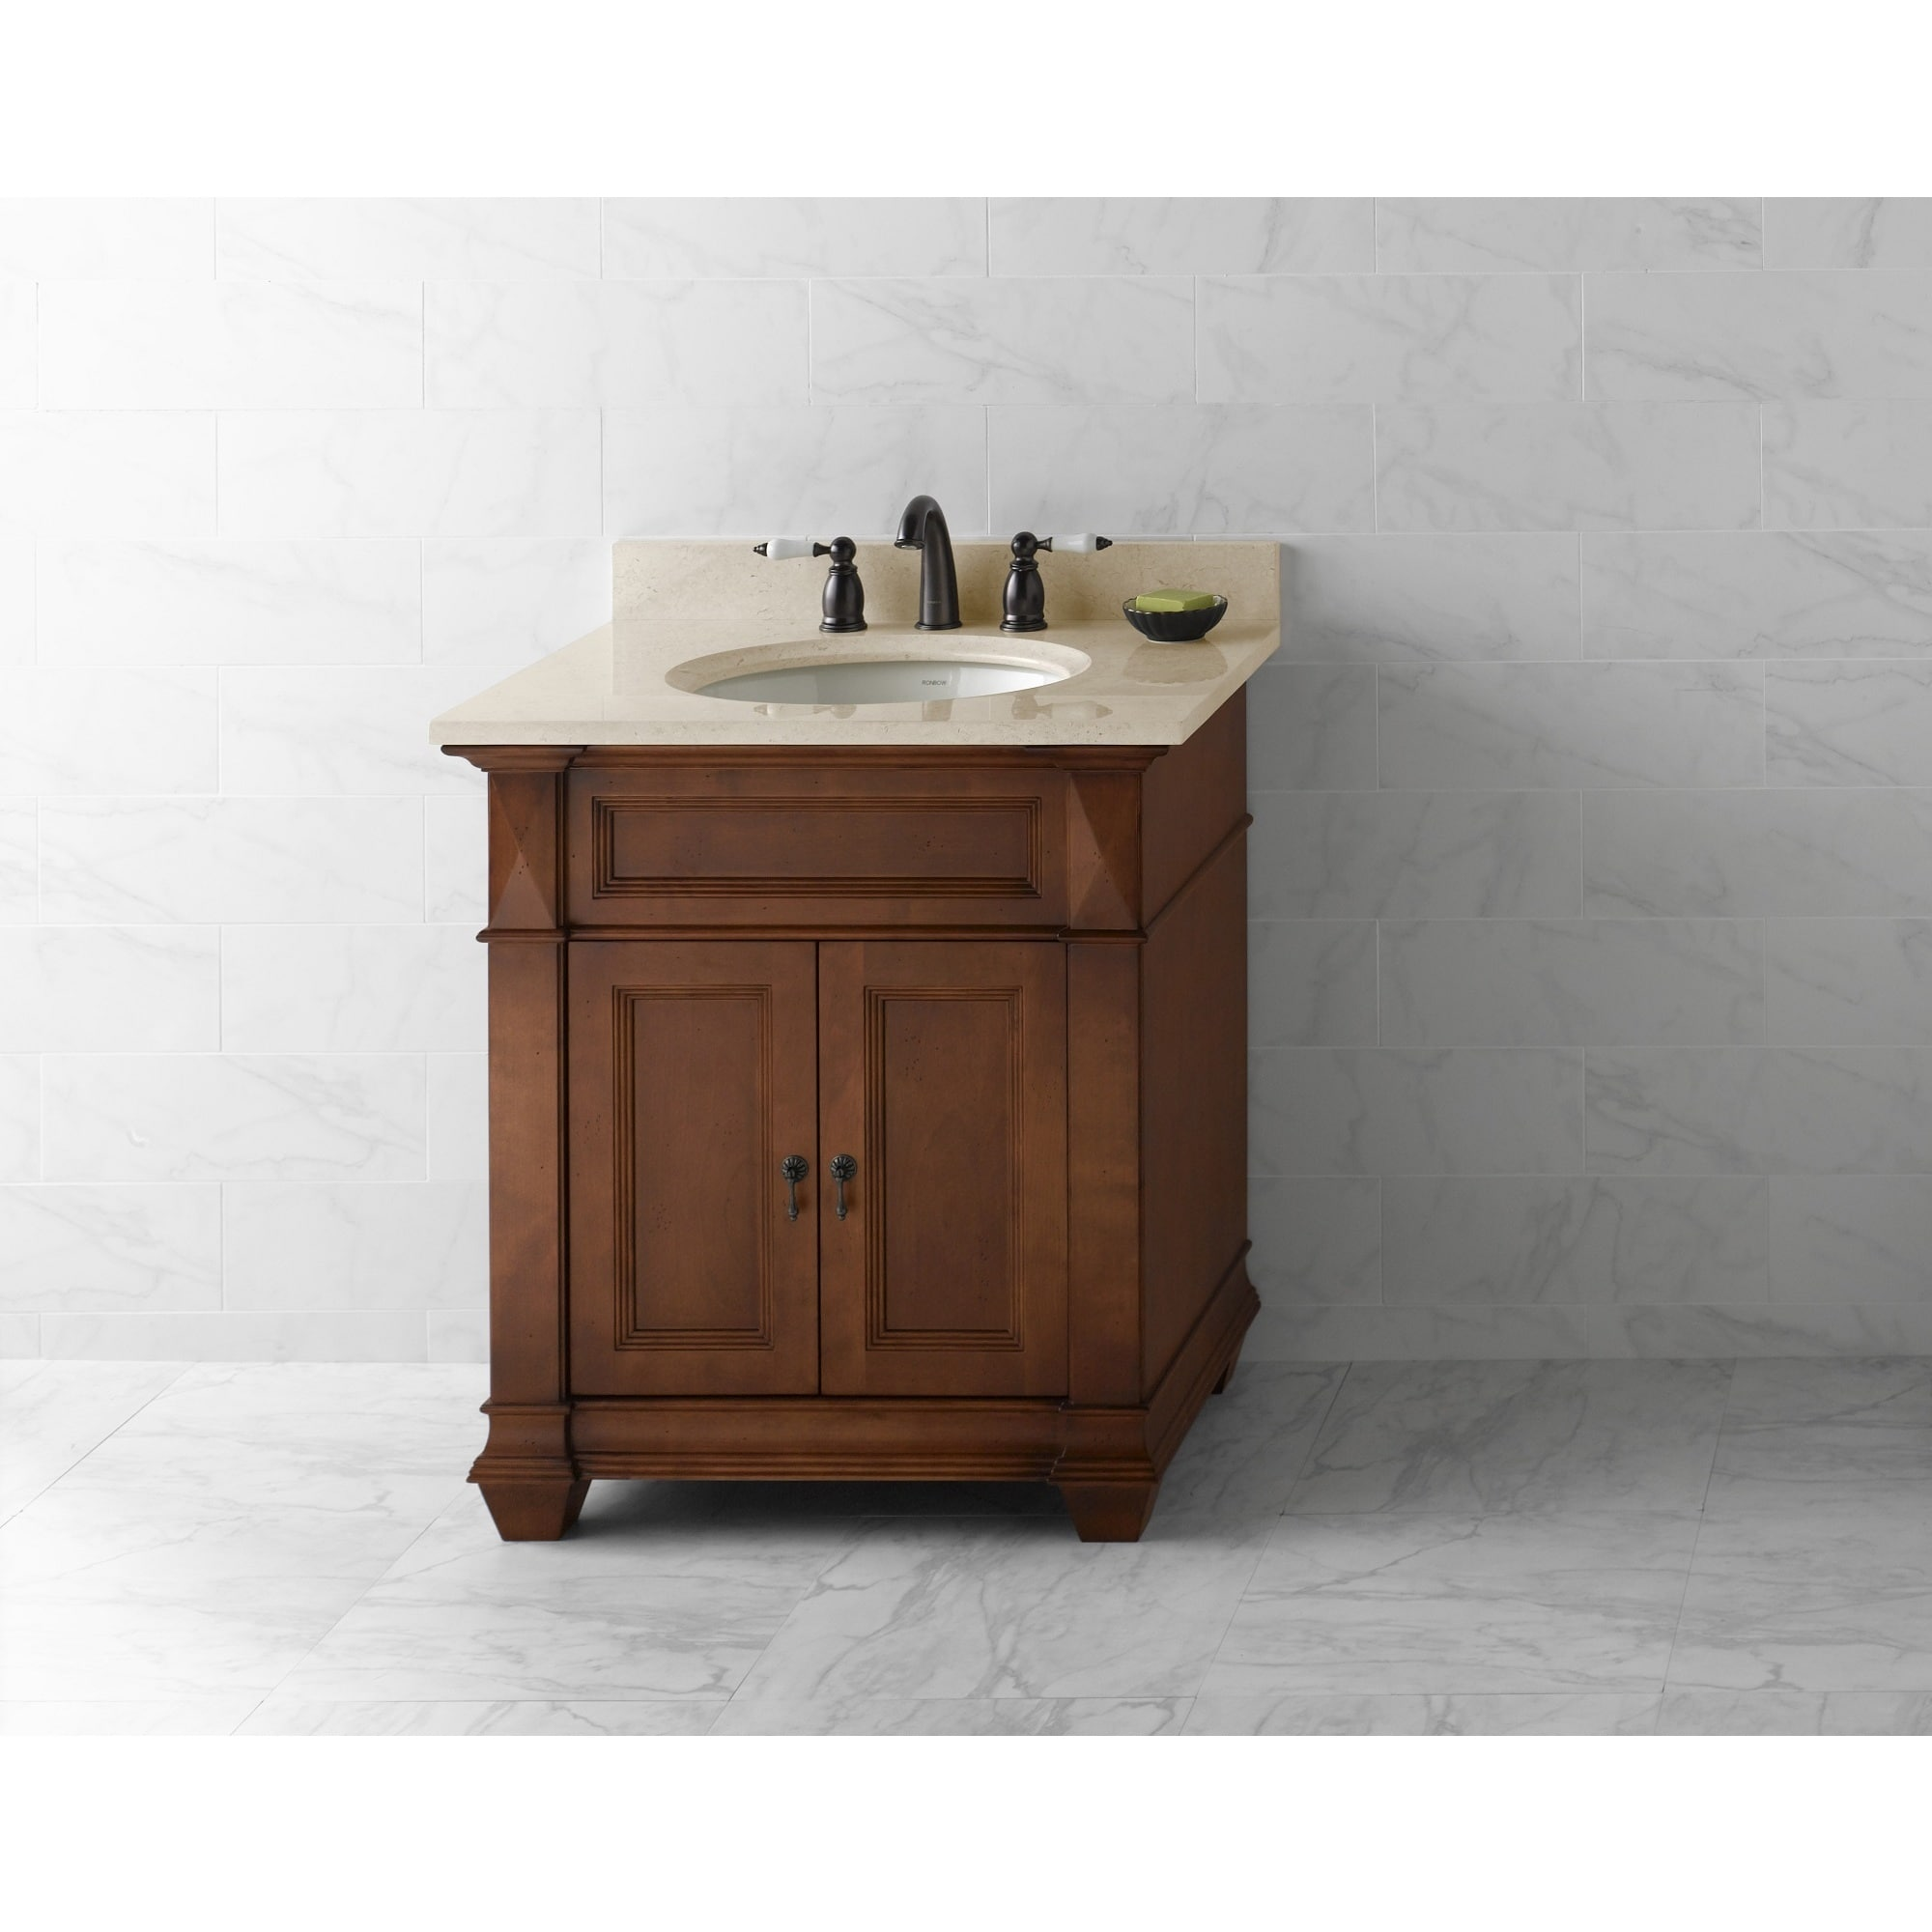 Bathroom Vanity 30 Inch Ronbow Torino 30 Inch Bathroom Vanity Set In Colonial Cherry Marble Top And Backsplash With White Oval Ceramic Bathroom Sink